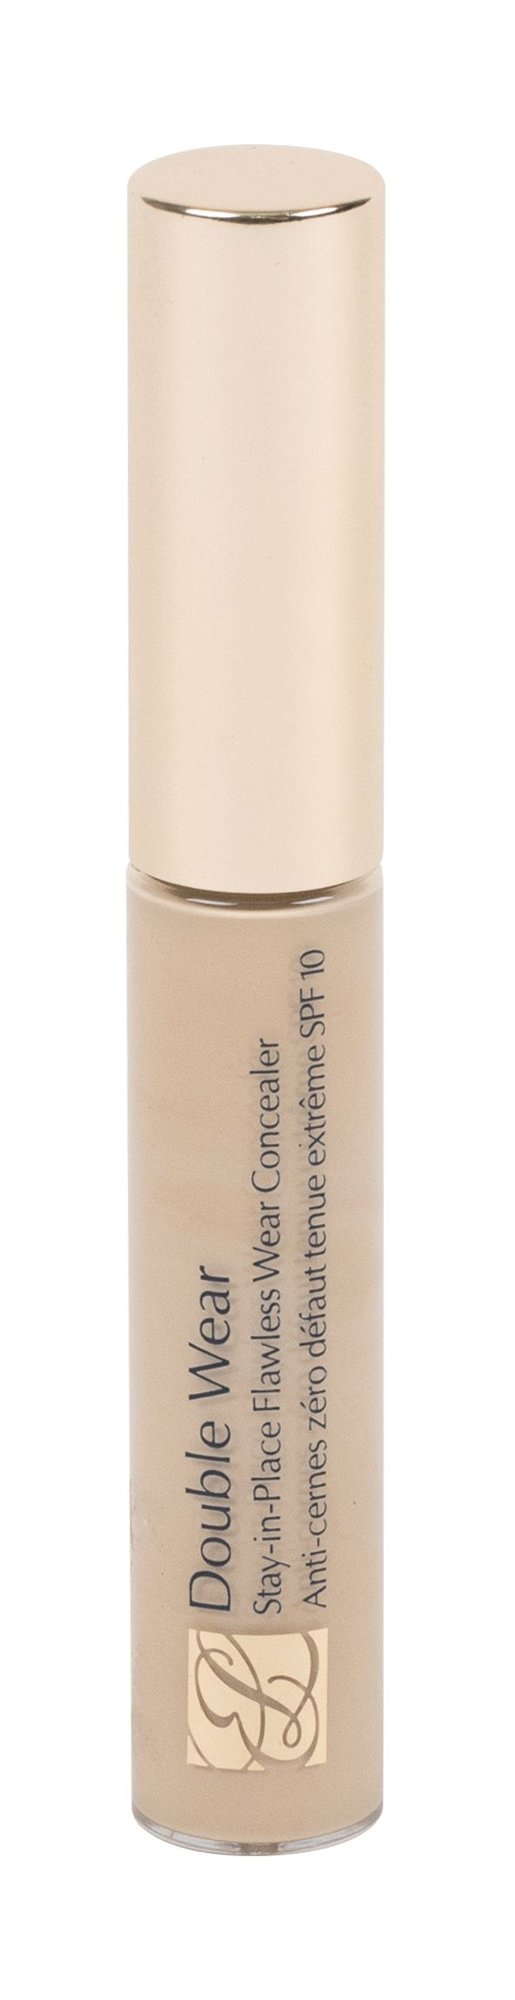 Estée Lauder Double Wear Corrector 7ml 07 Warm Light